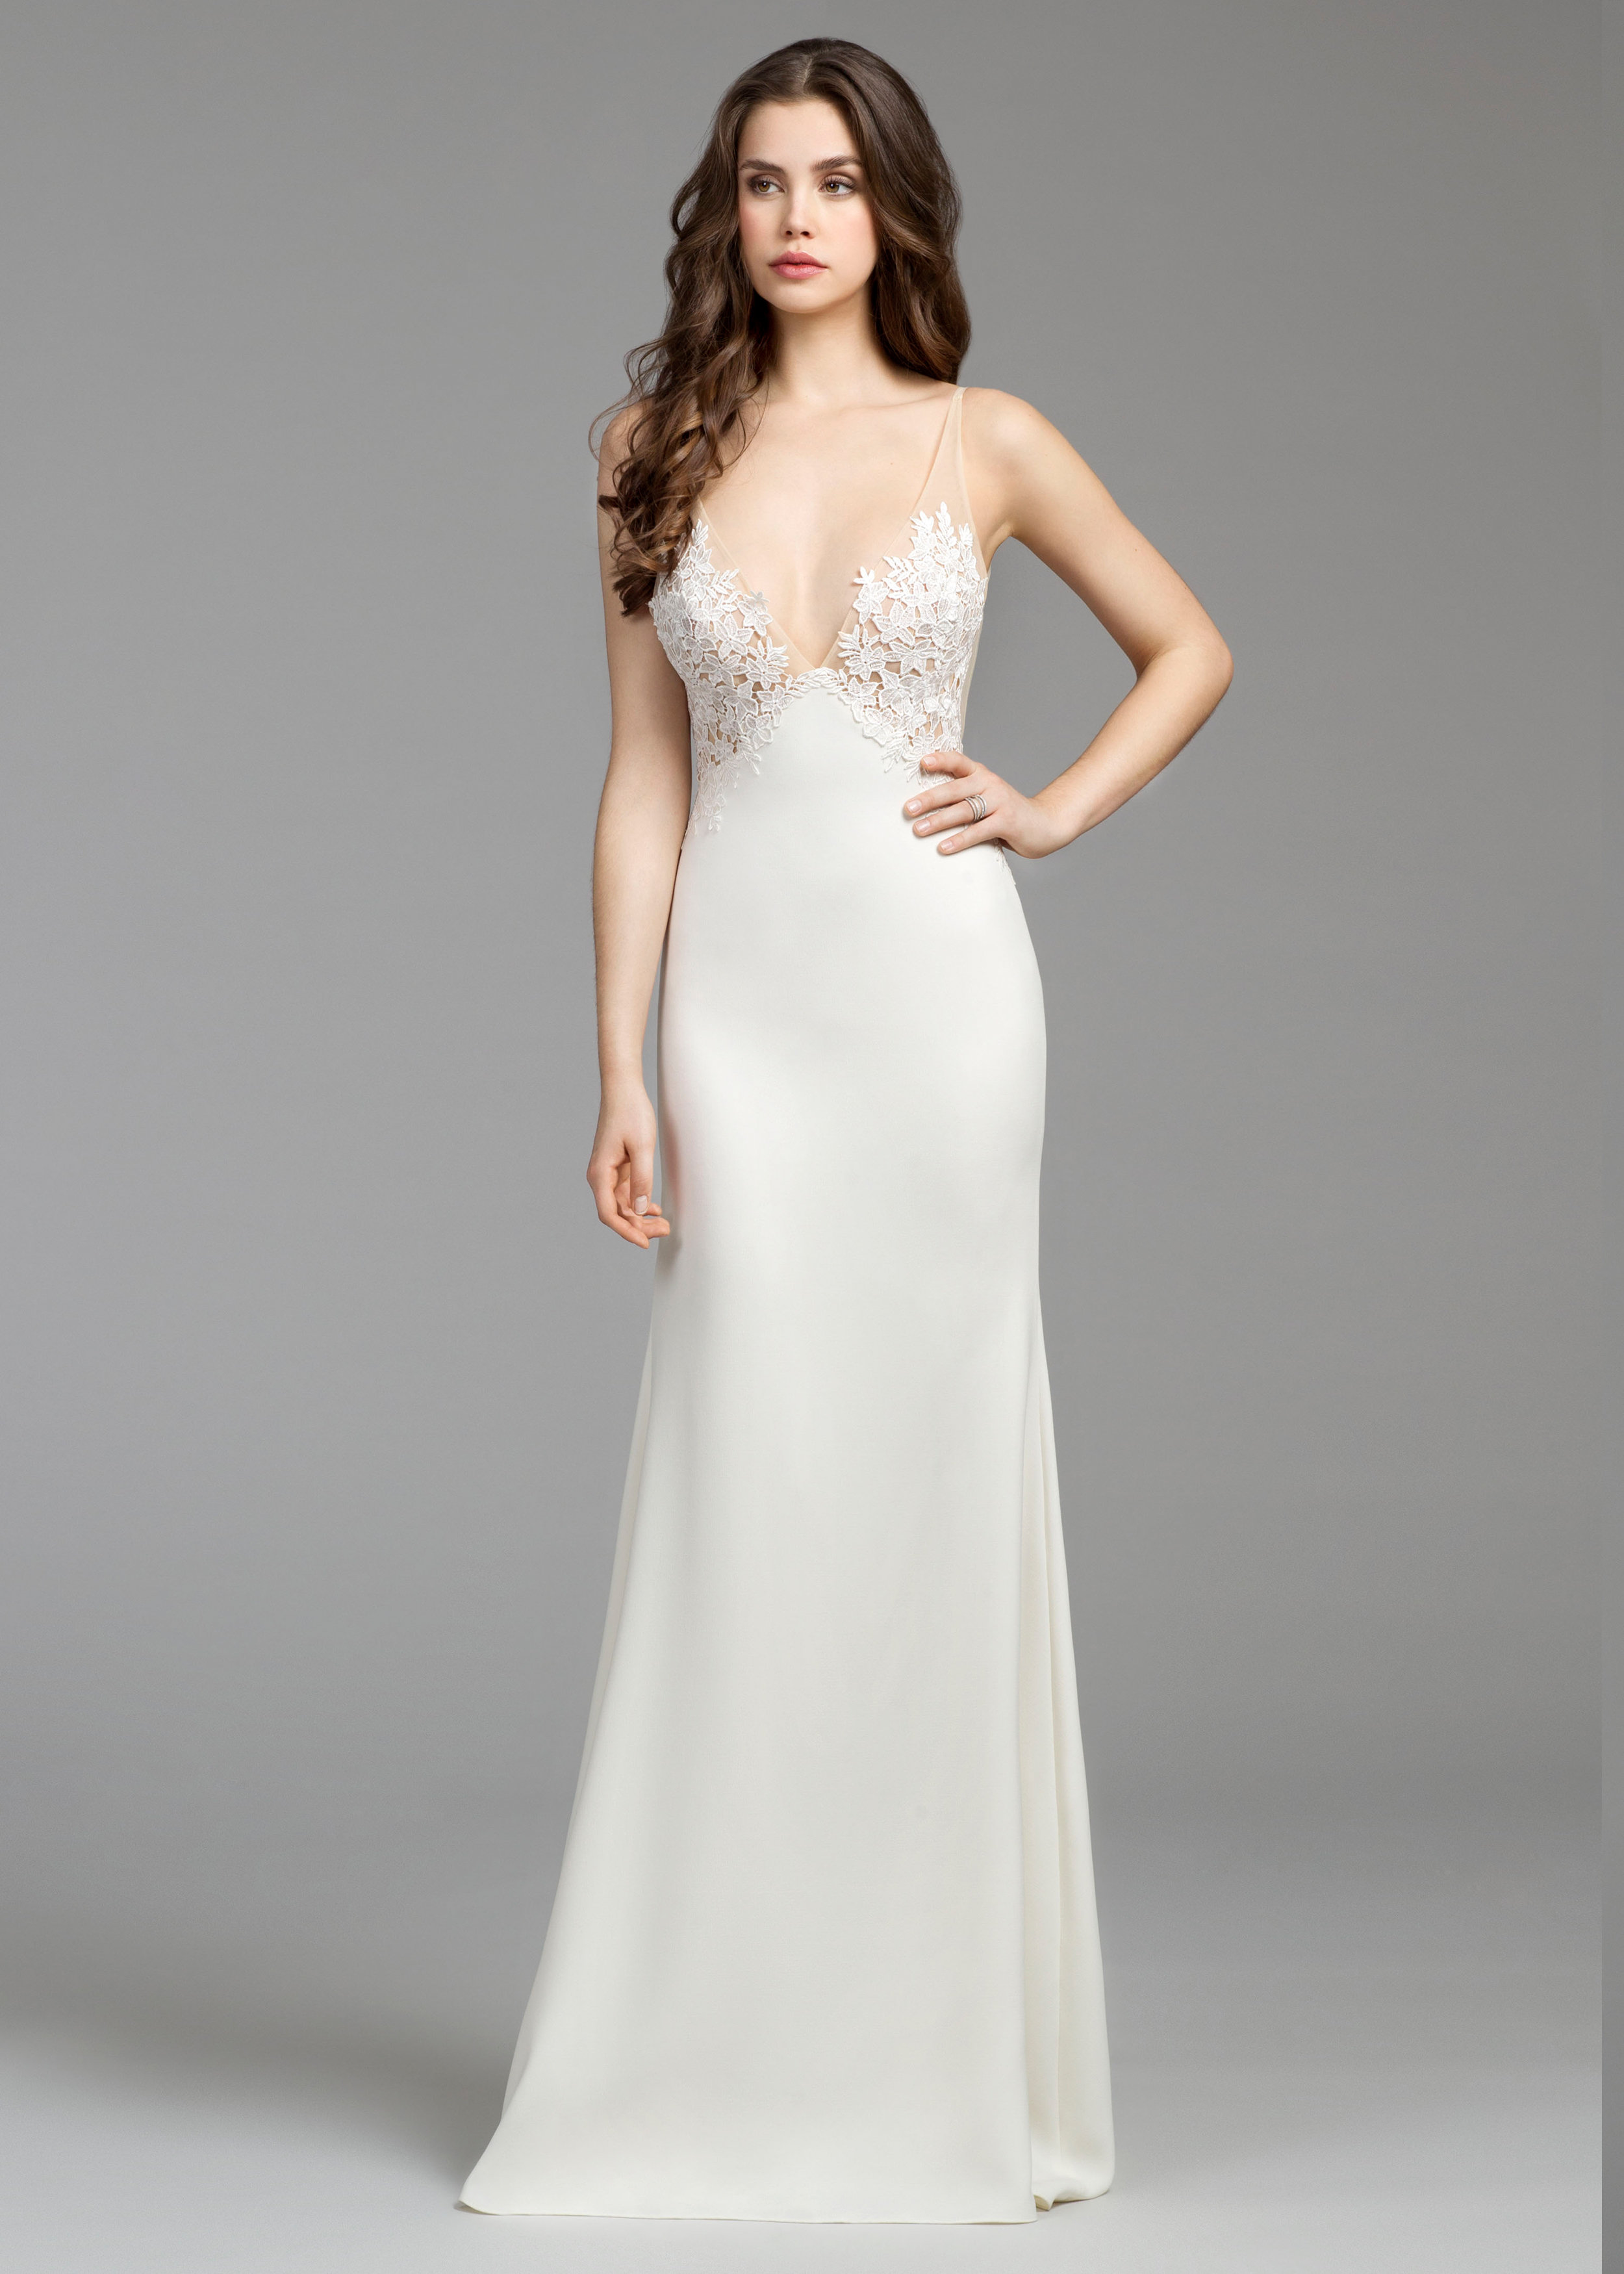 Bridal Gowns And Wedding Dresses By Jlm Couture Style 2651